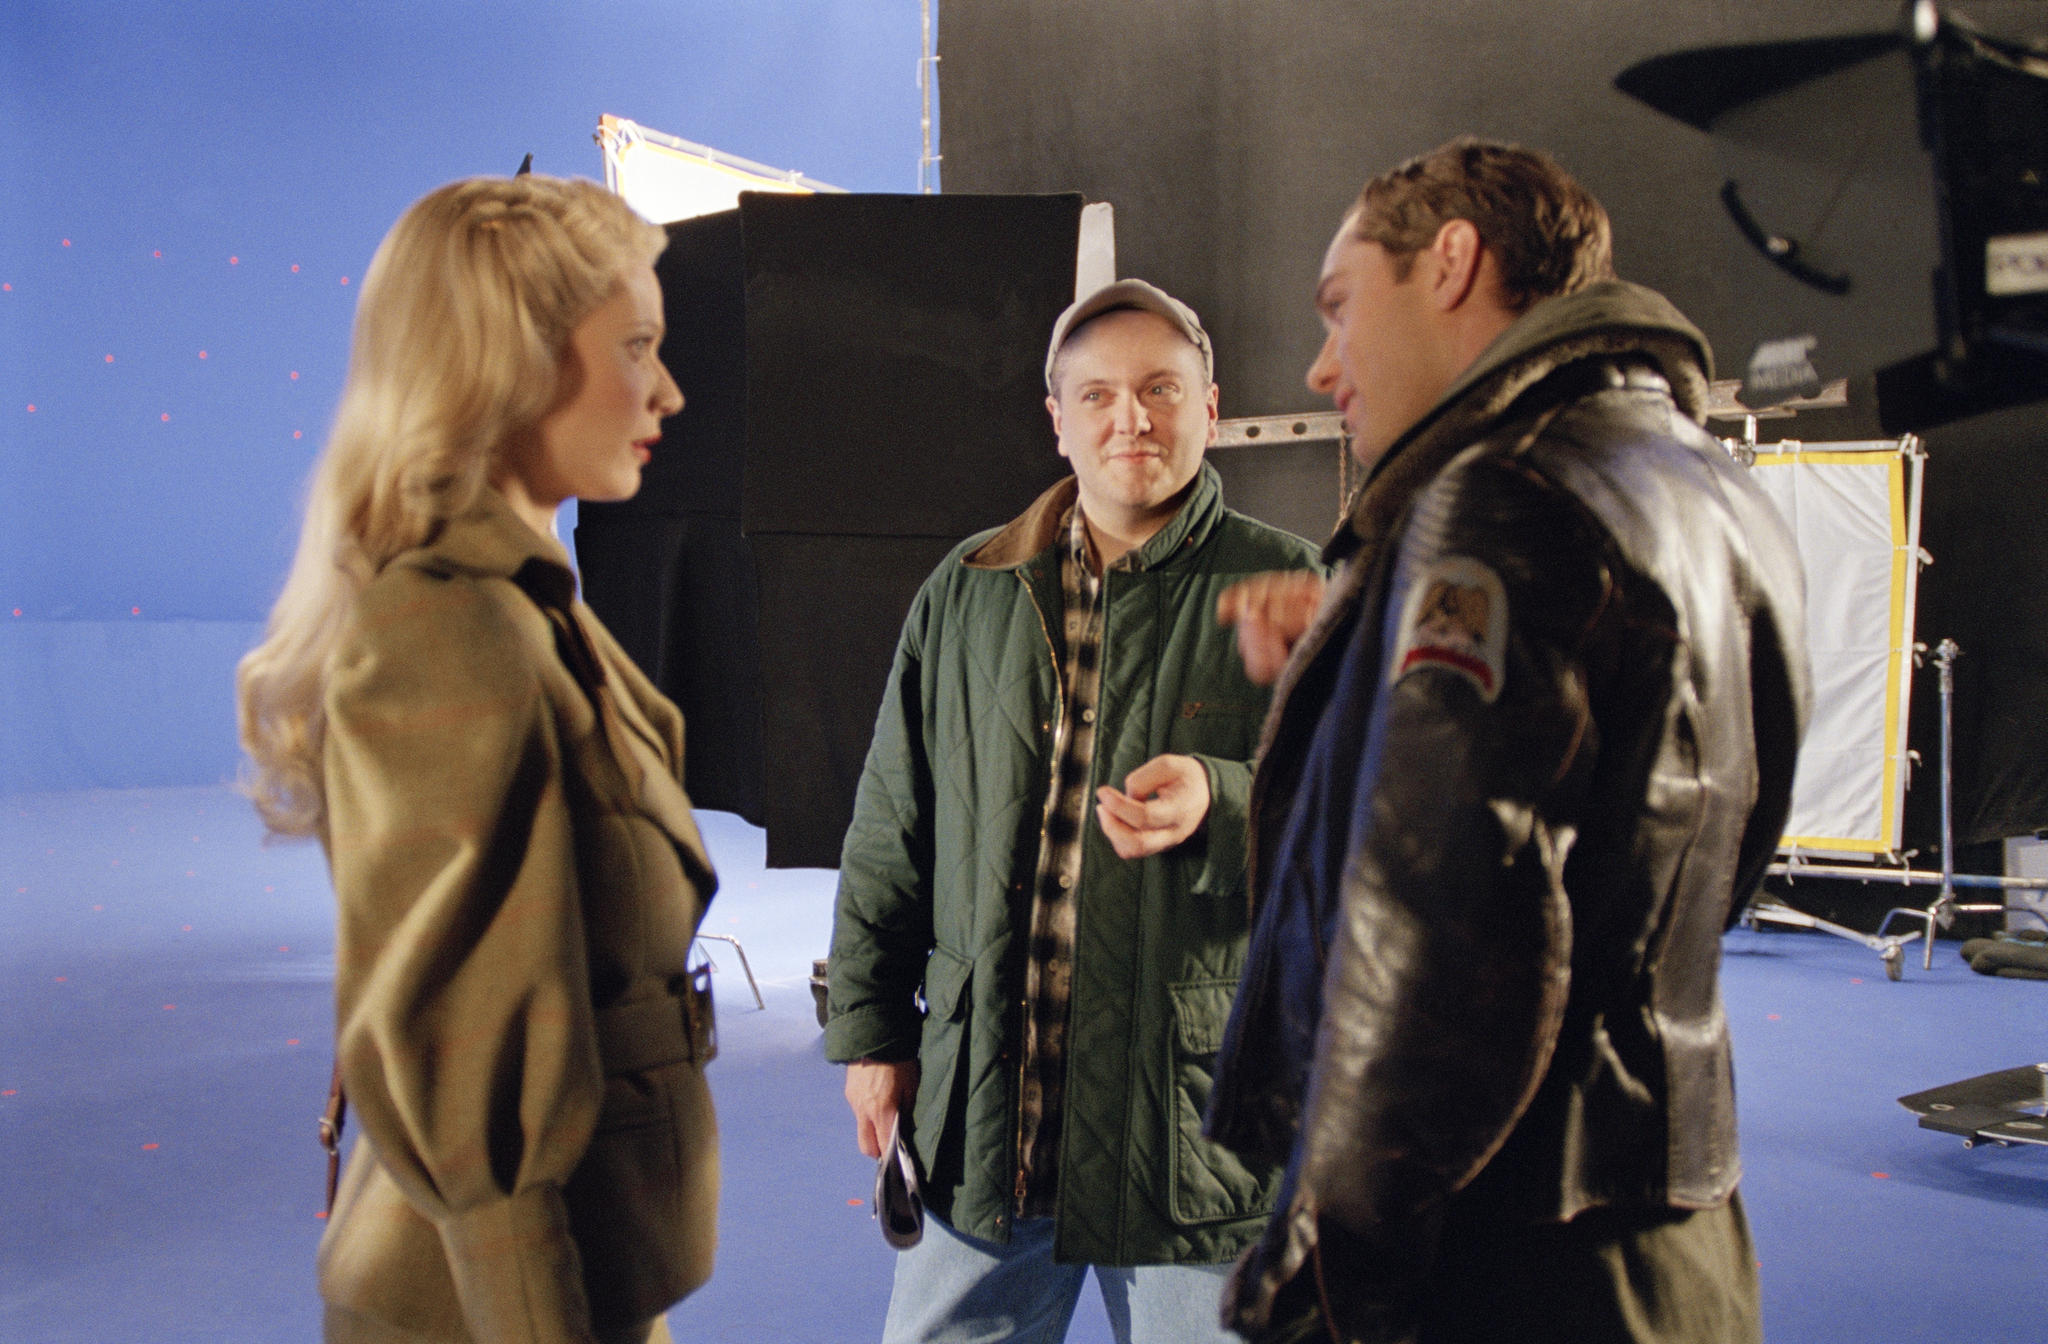 Jude Law, Gwyneth Paltrow, and Kerry Conran in Sky Captain and the World of Tomorrow (2004)